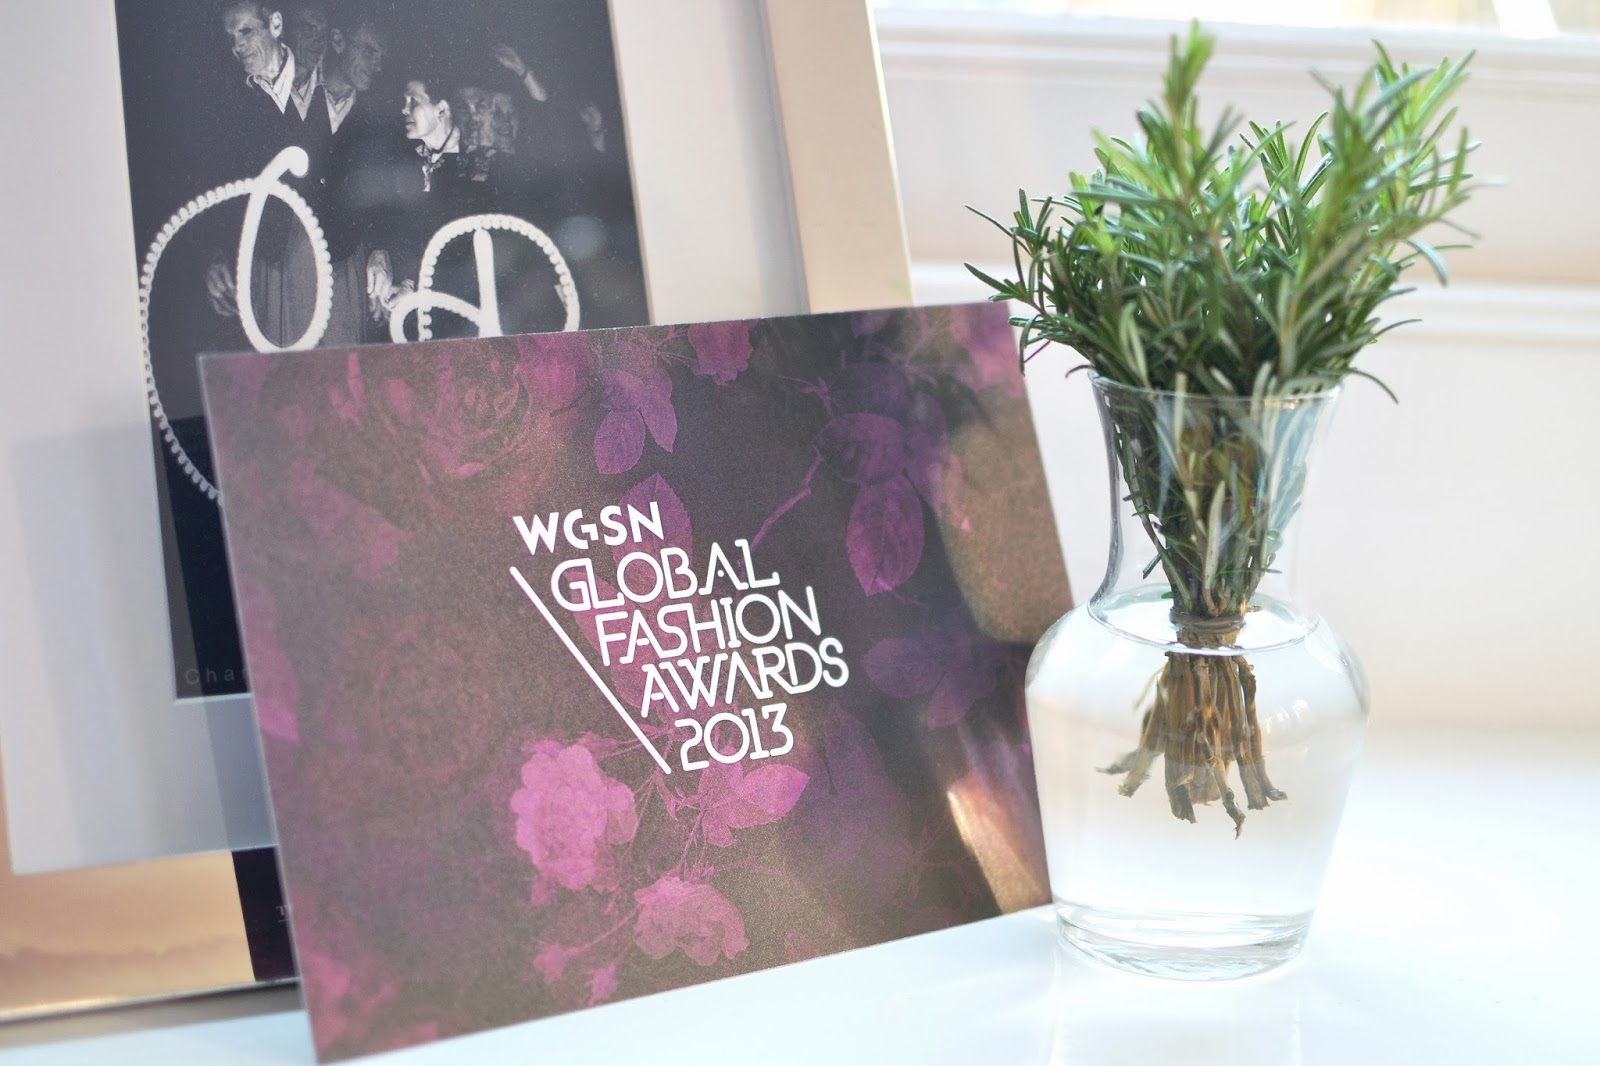 WGSN GLOBAL FASHION AWARDS 2013